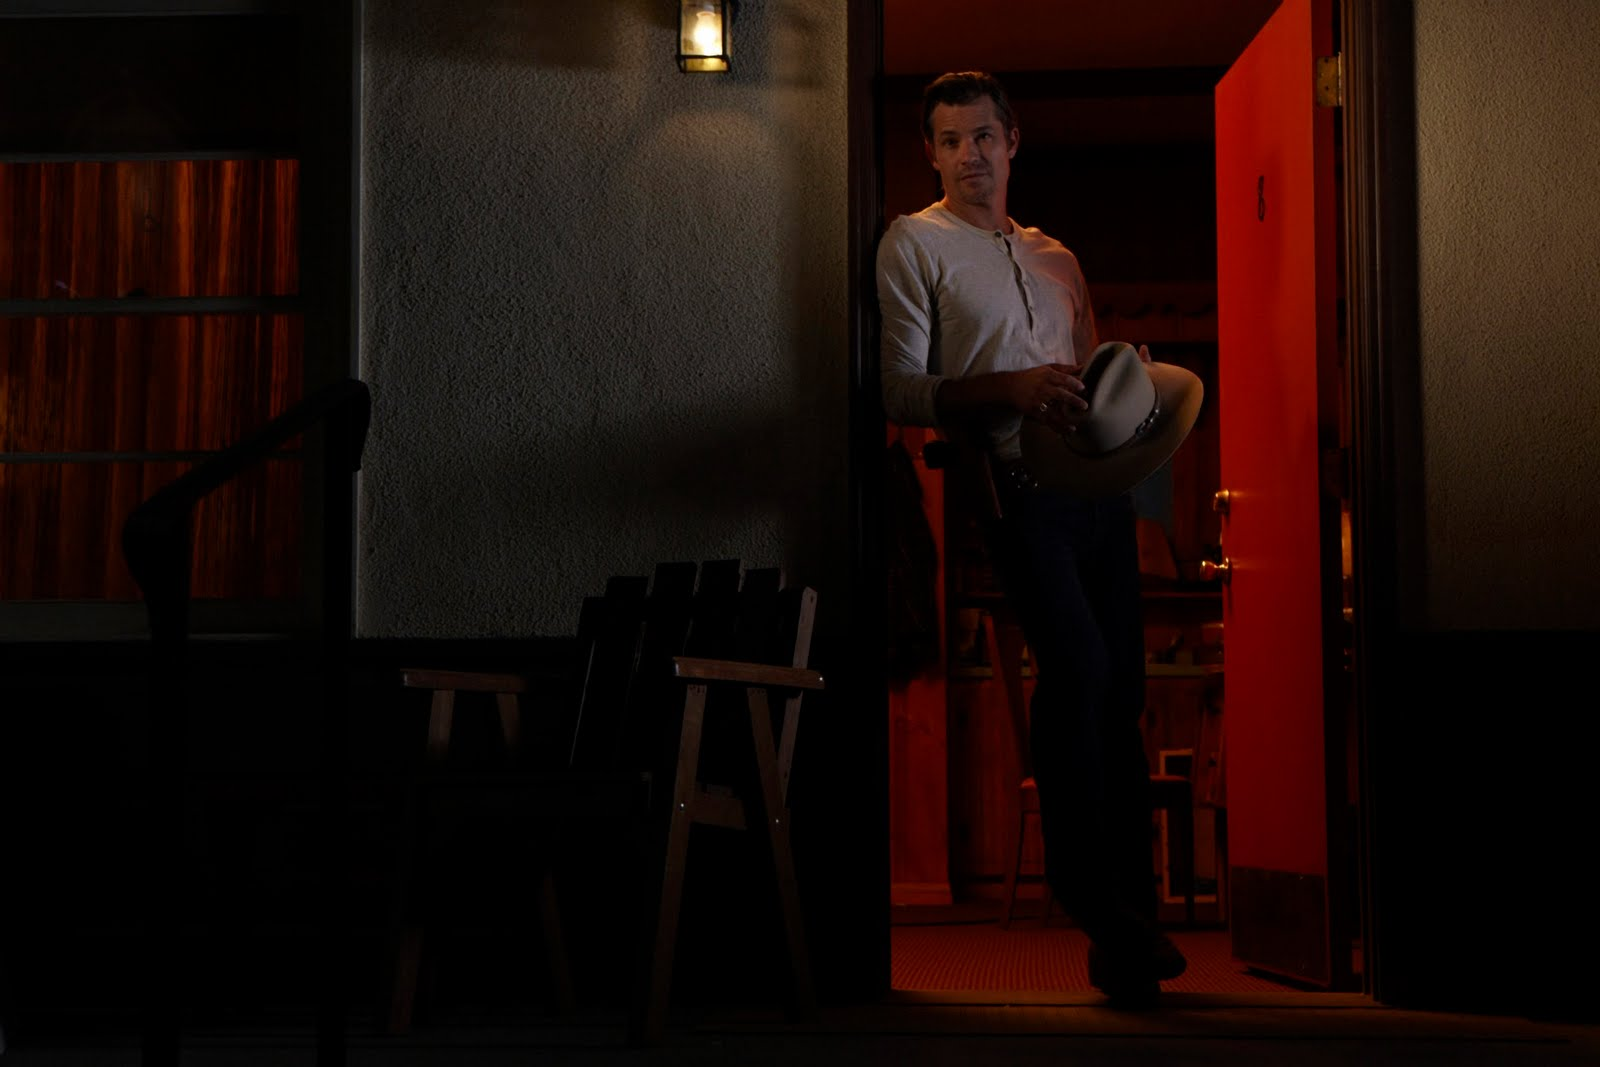 raylan in doorway hat in hand